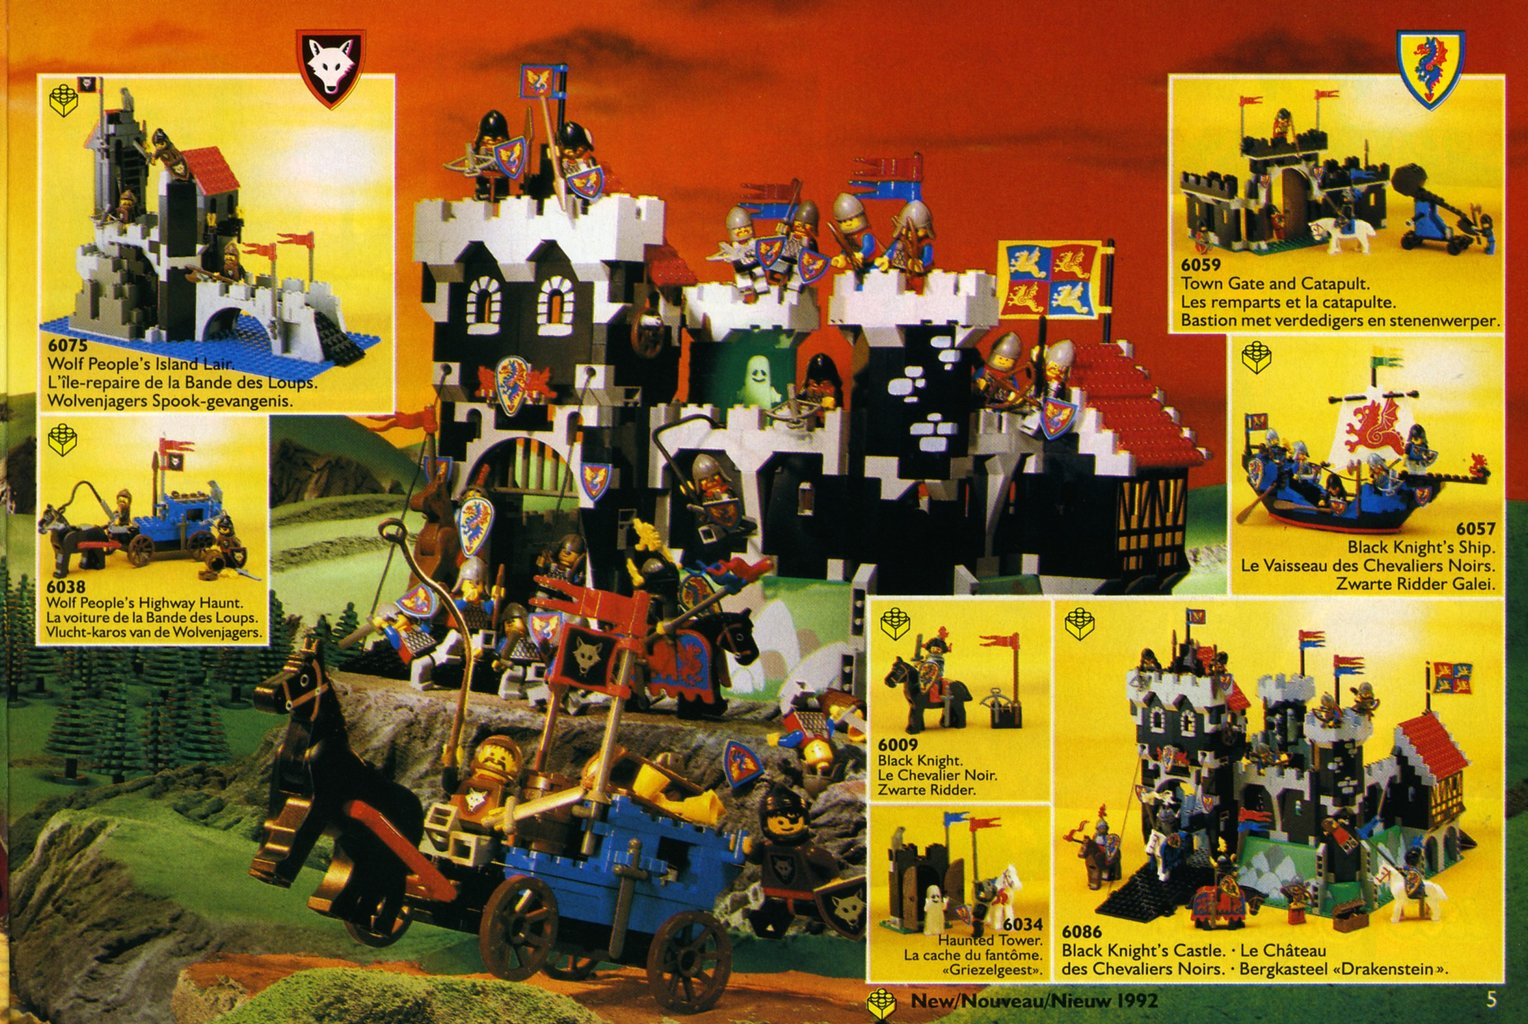 1992De Jouets Lego Lego 1992De Catalogue Lego Catalogue 1992De Jouets Catalogue thQdCsrx